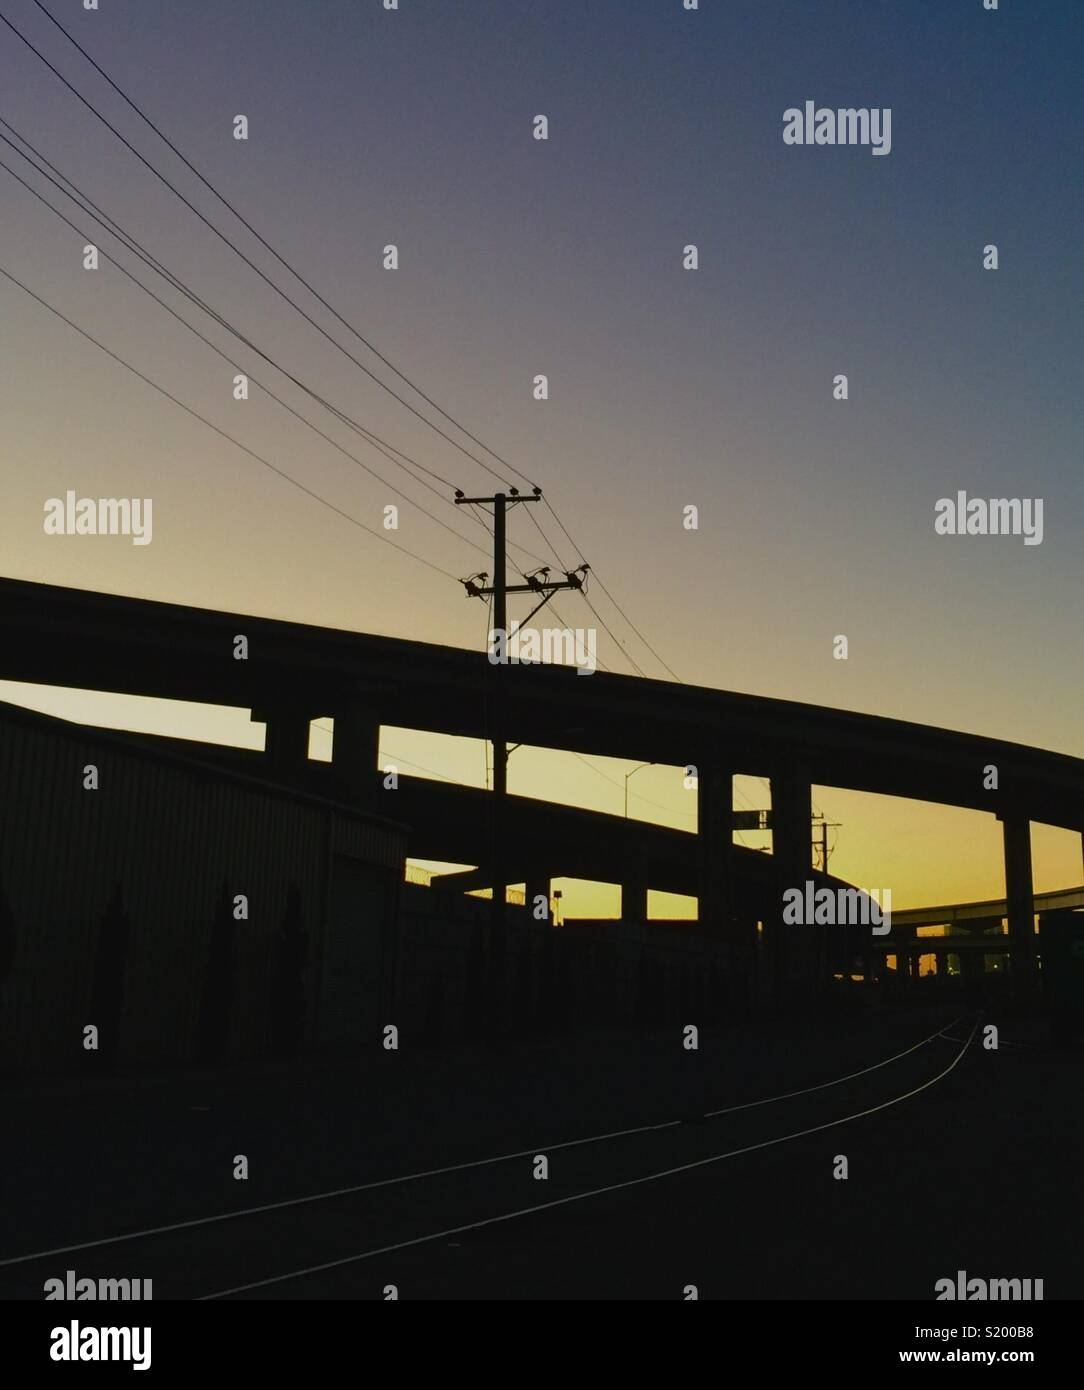 Highway overpasses and cable car tracks at sunset. - Stock Image